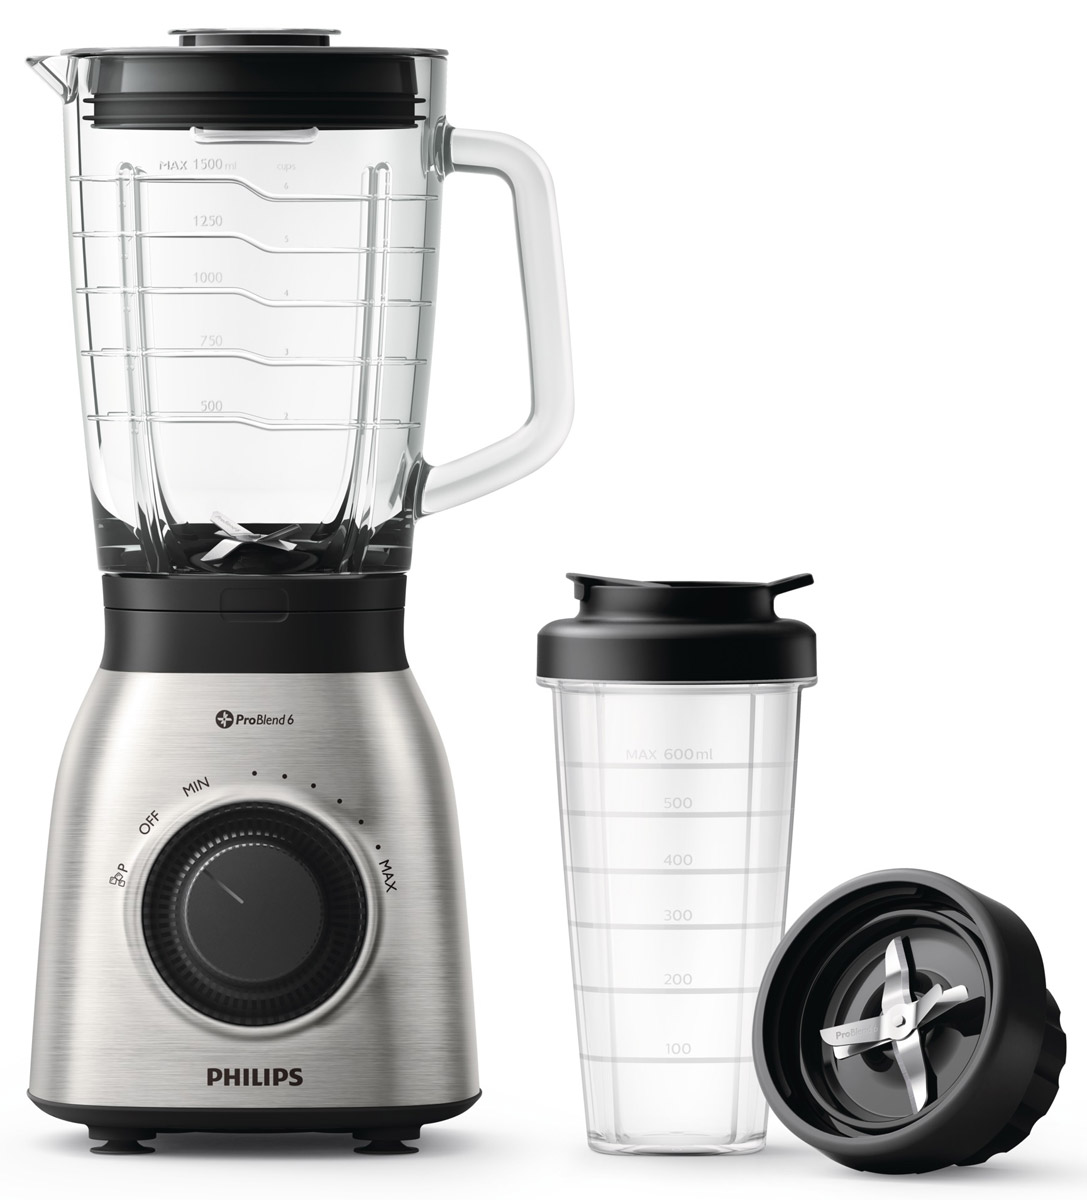 Philips Viva Collection HR3556/00 блендер со стаканом On the Go philips hr3745 00 viva collection миксер